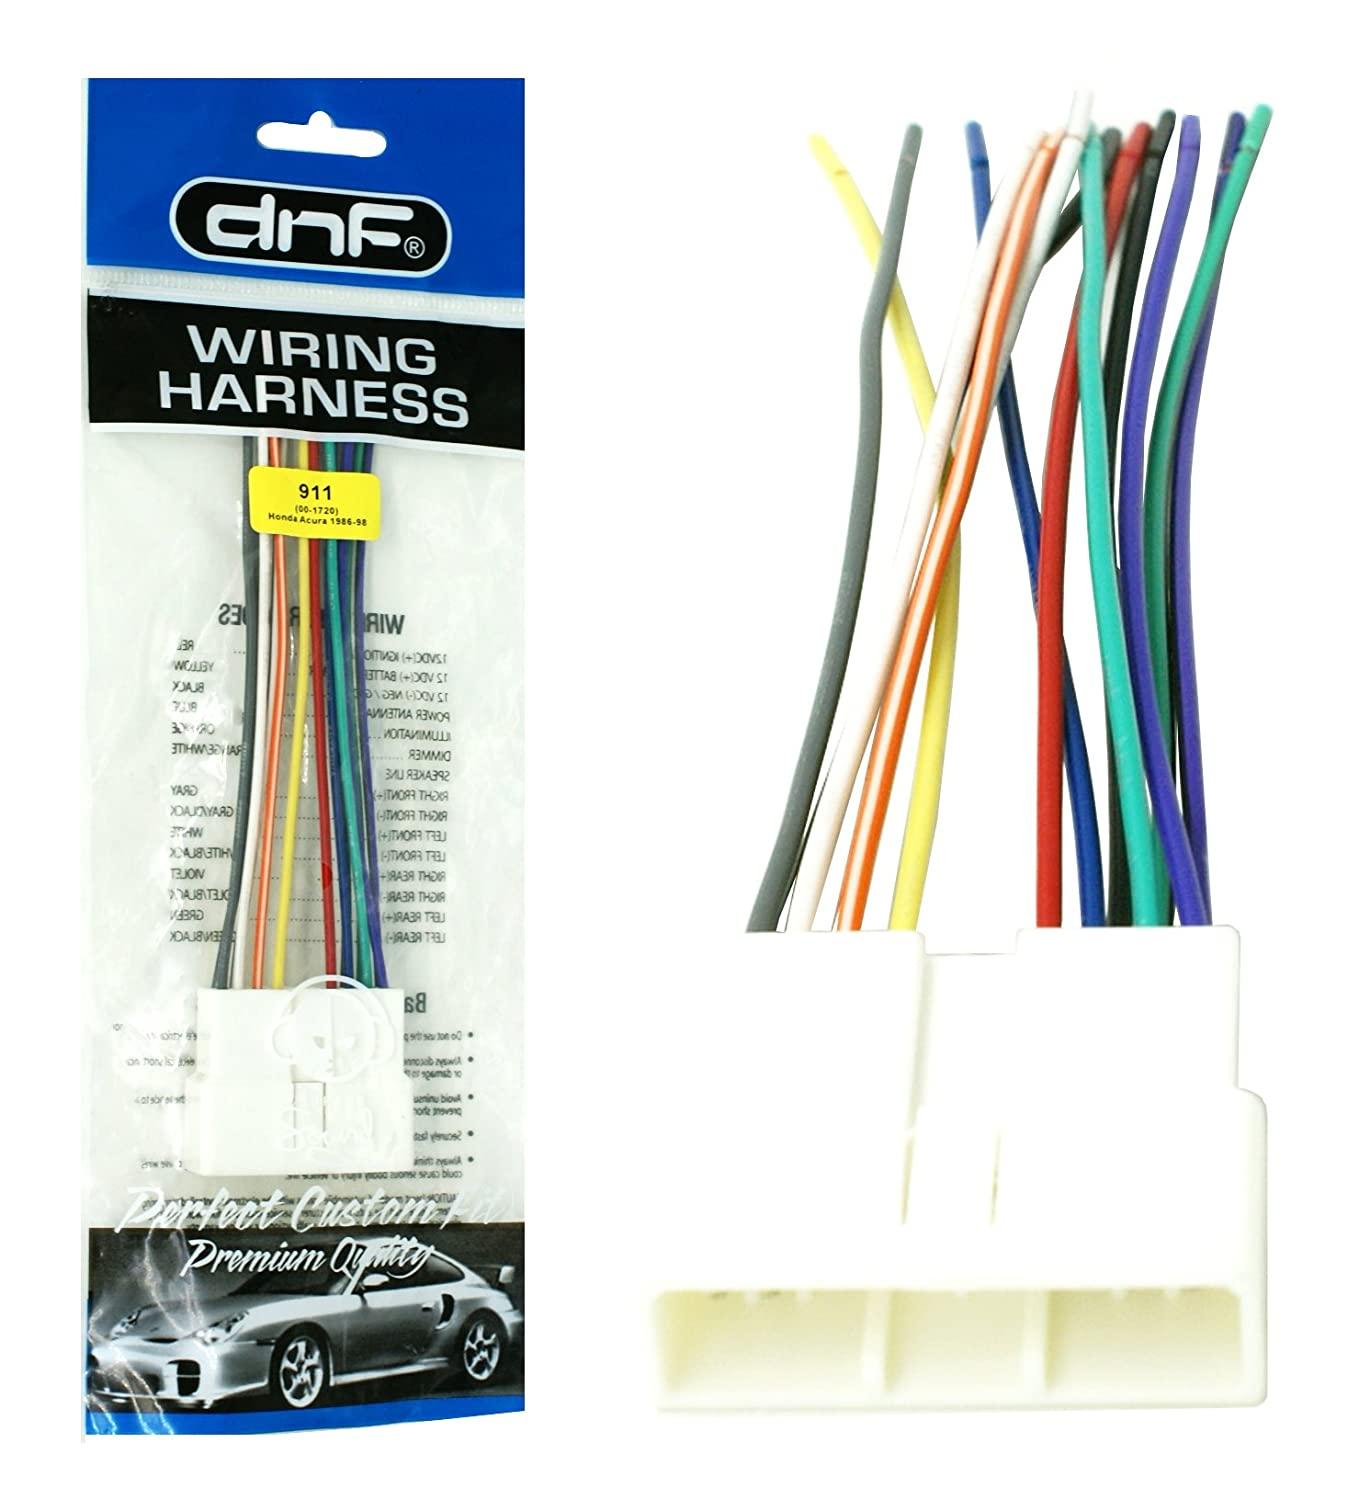 Amazon.com: DNF Aftermarket Wire Harness Stereo + Radio ... on